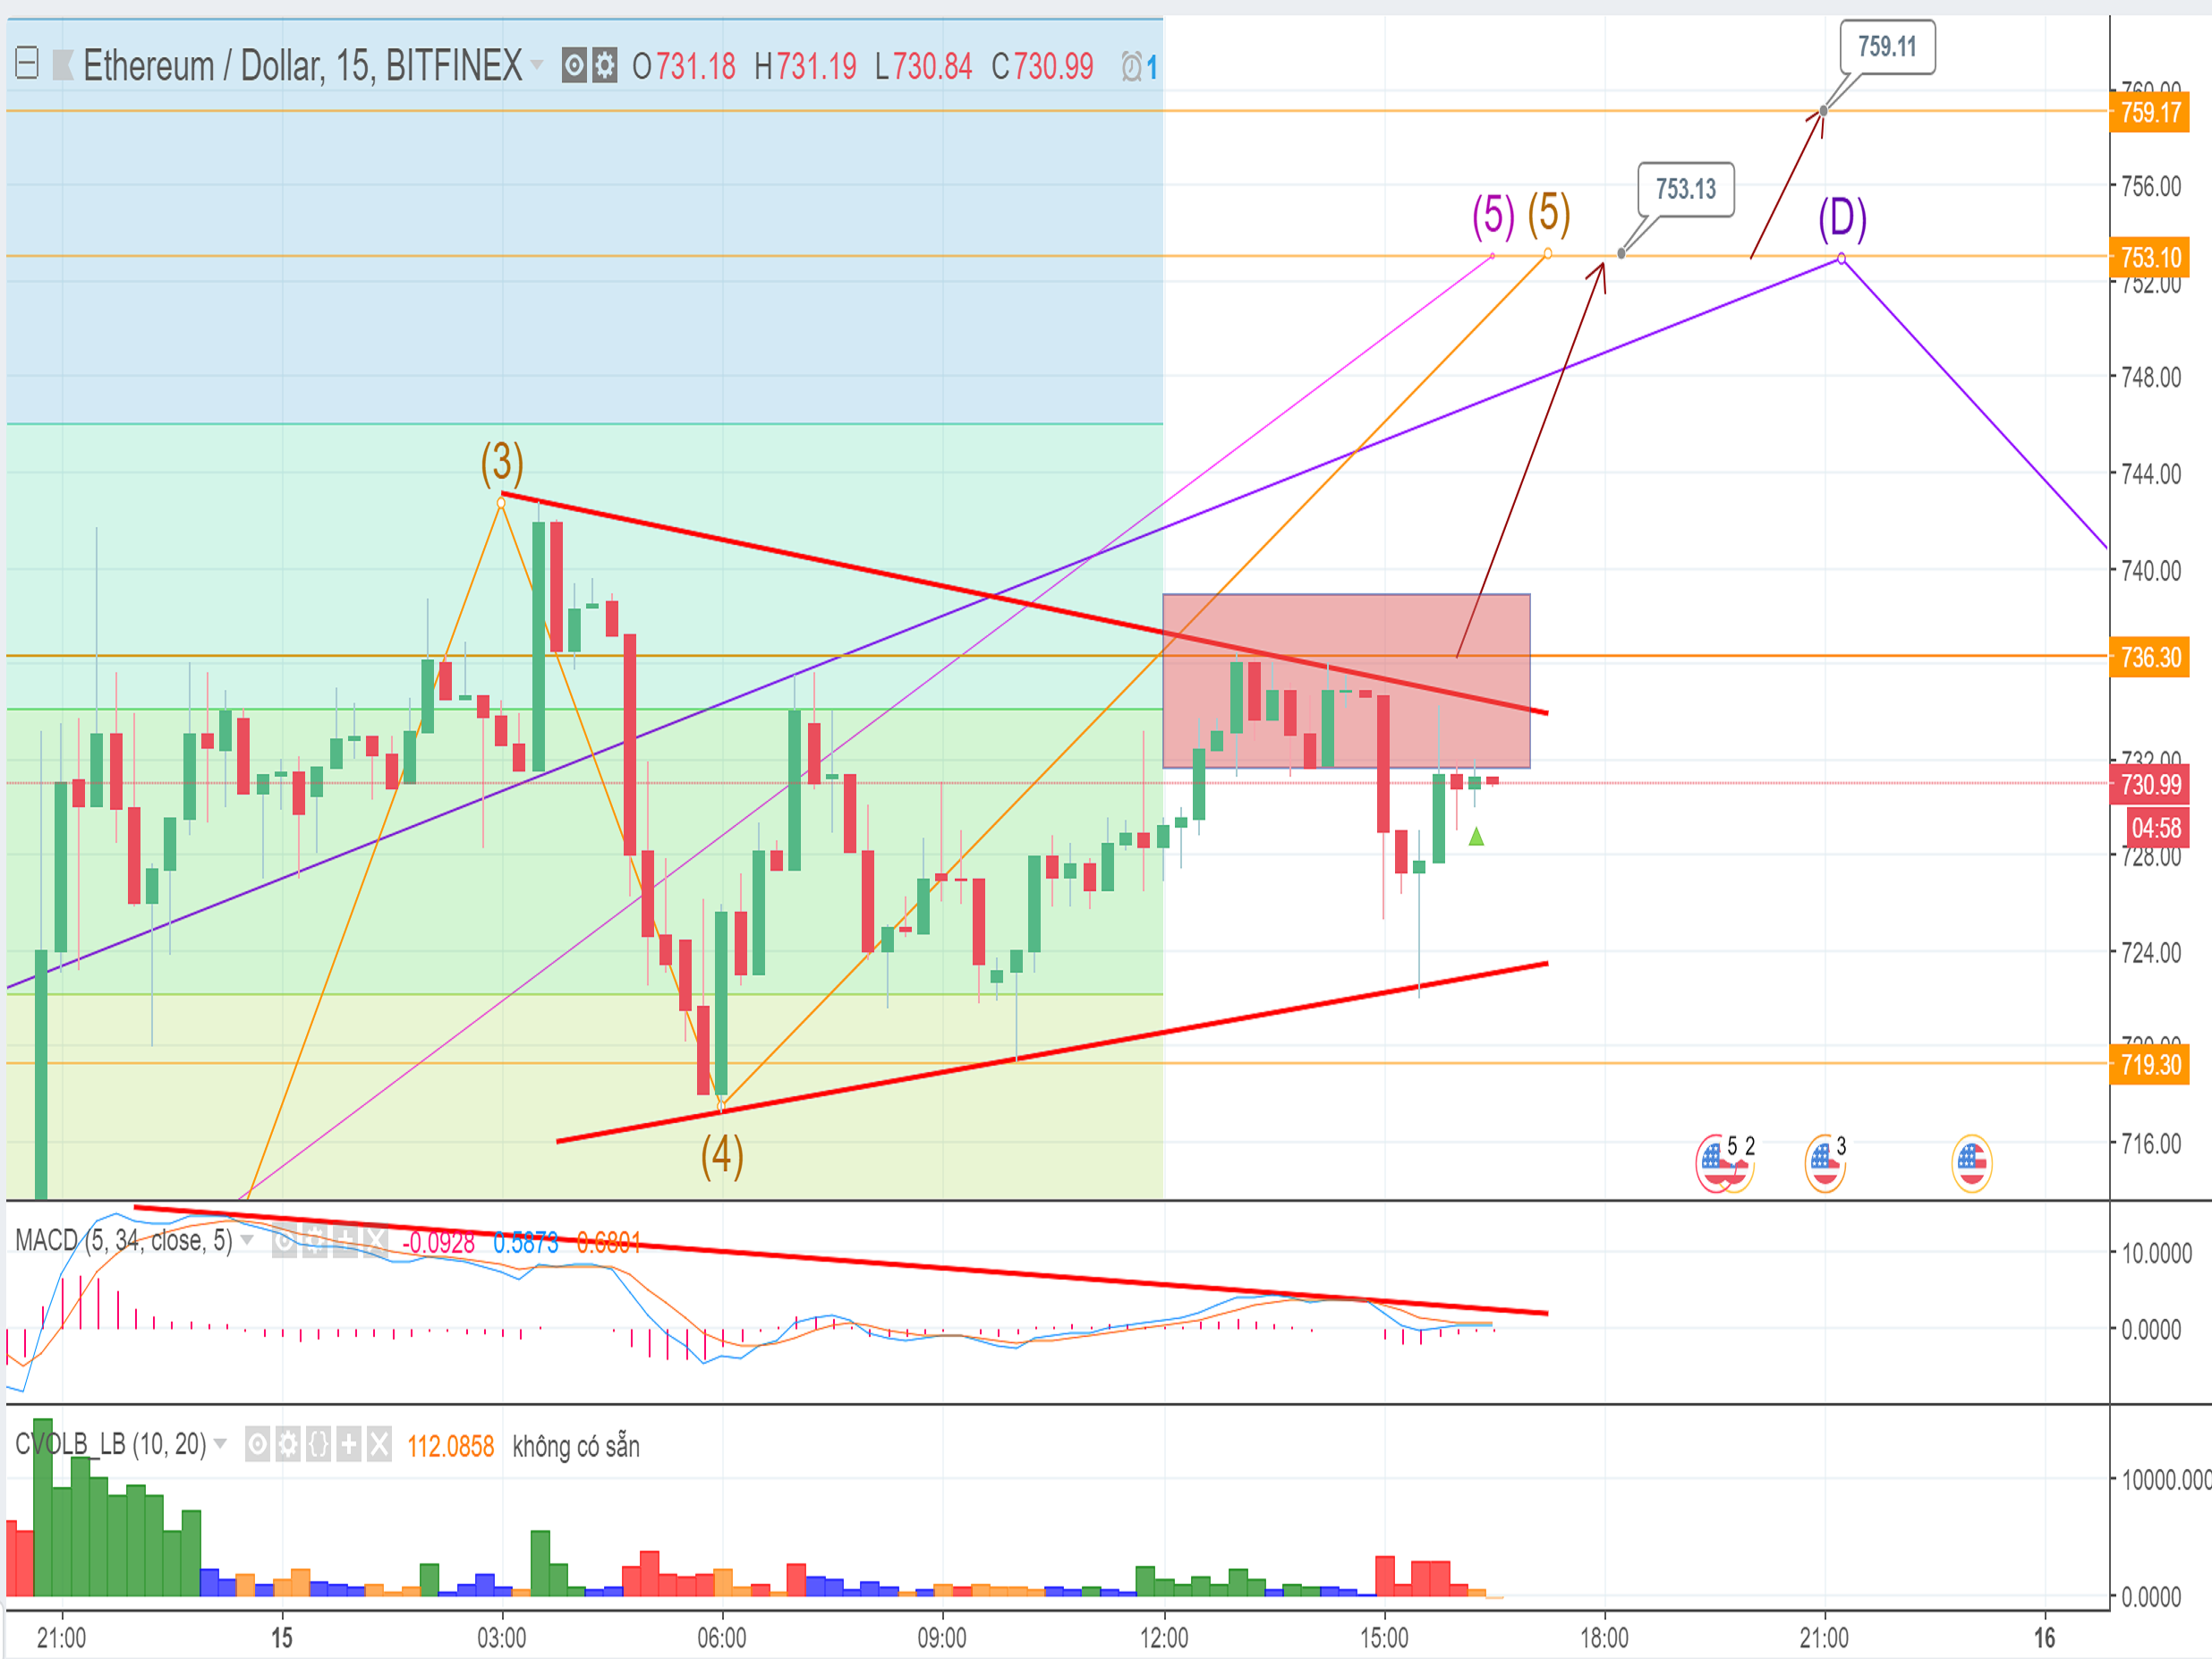 ETH price will tick up to the key level of $753 today (May 15th)